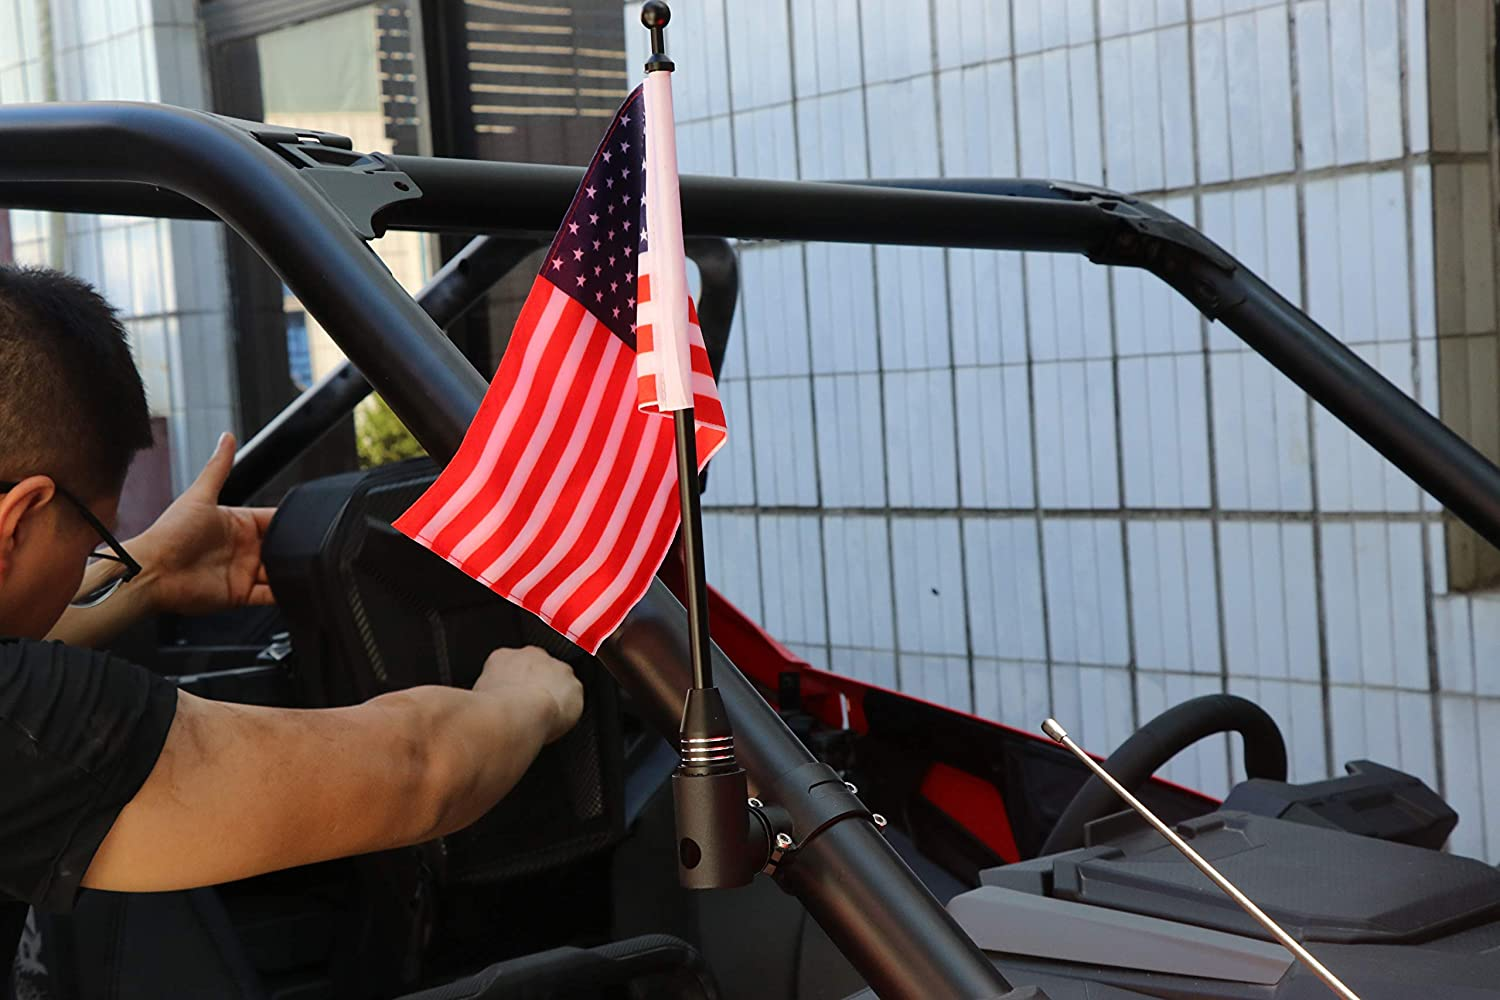 PLUSUTV Black Aluminum Alloy Roll Bar Flagpole Set with US Flag for UTV ATV and Other Models with 1.75-2inch Roll Bar